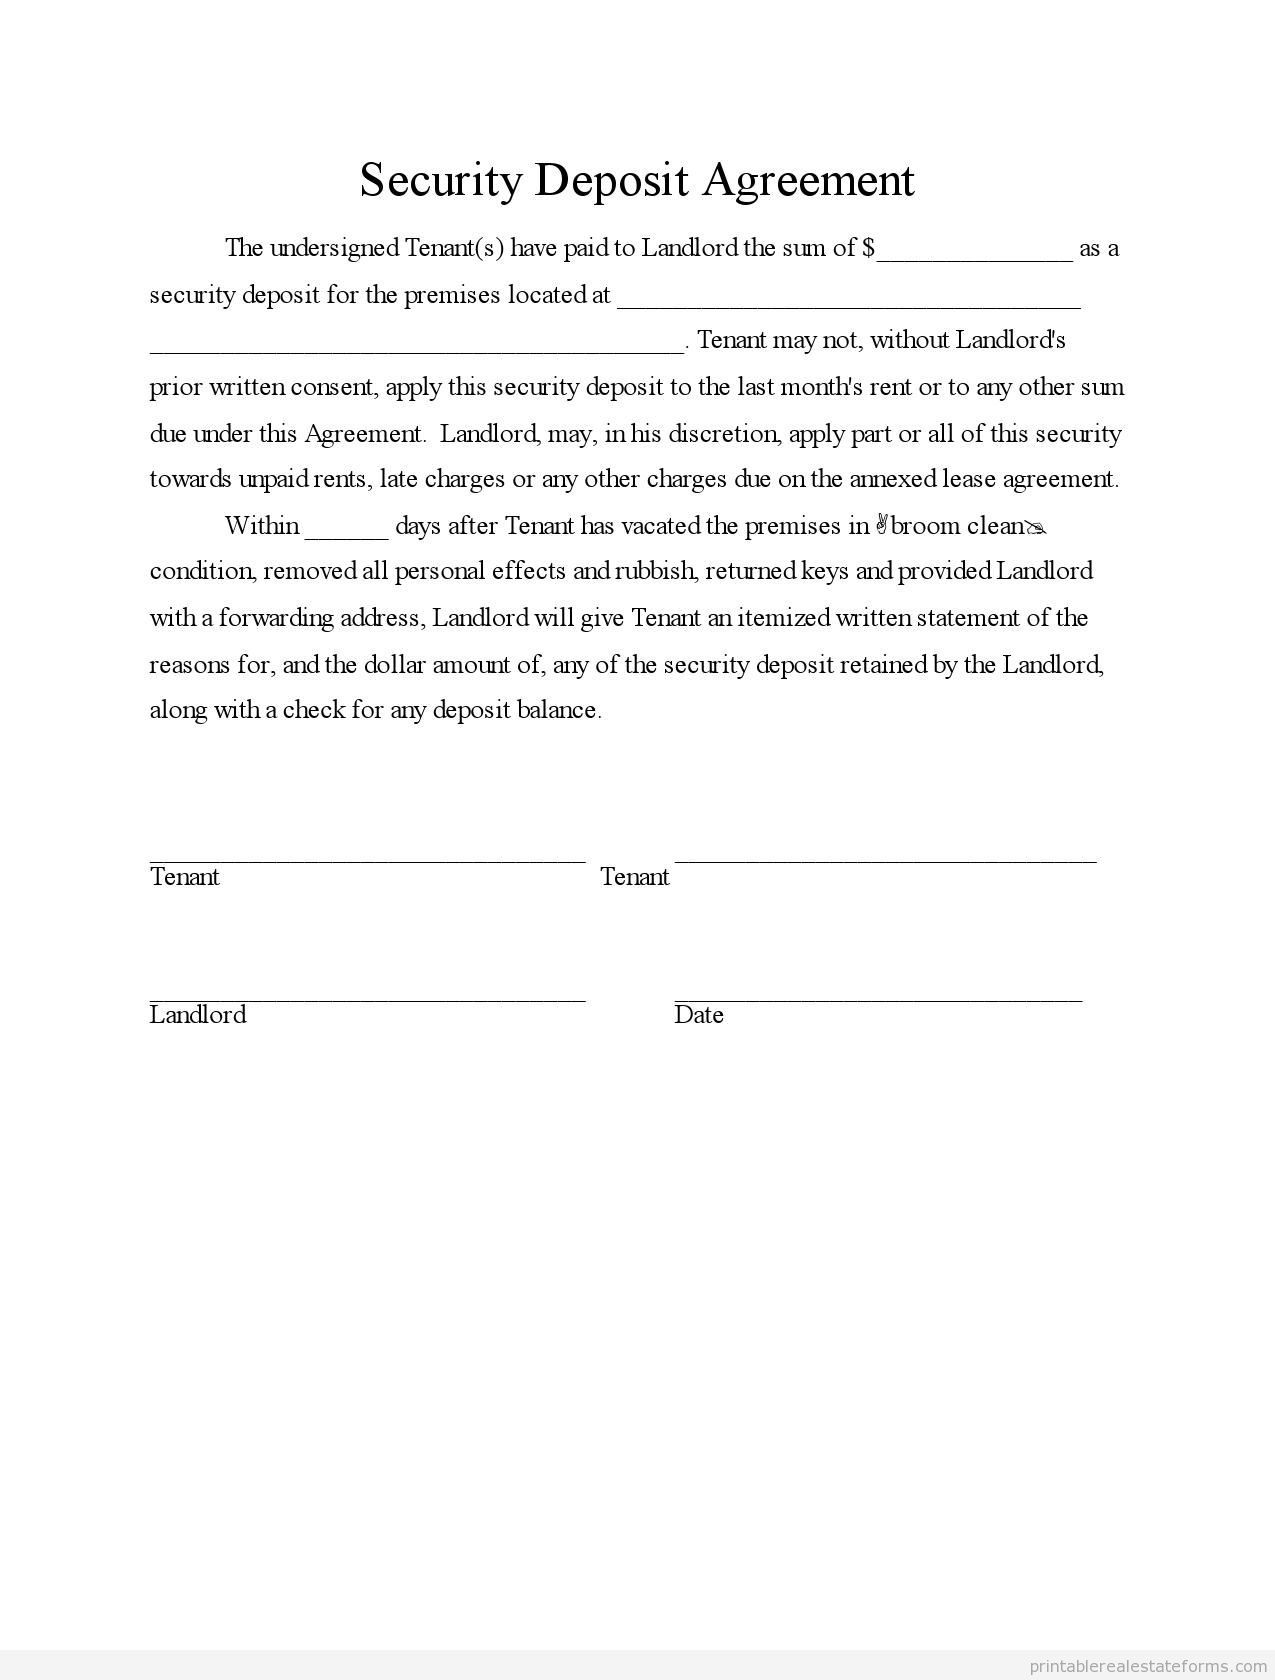 Sample Printable security deposit agreement Form | Sample Real